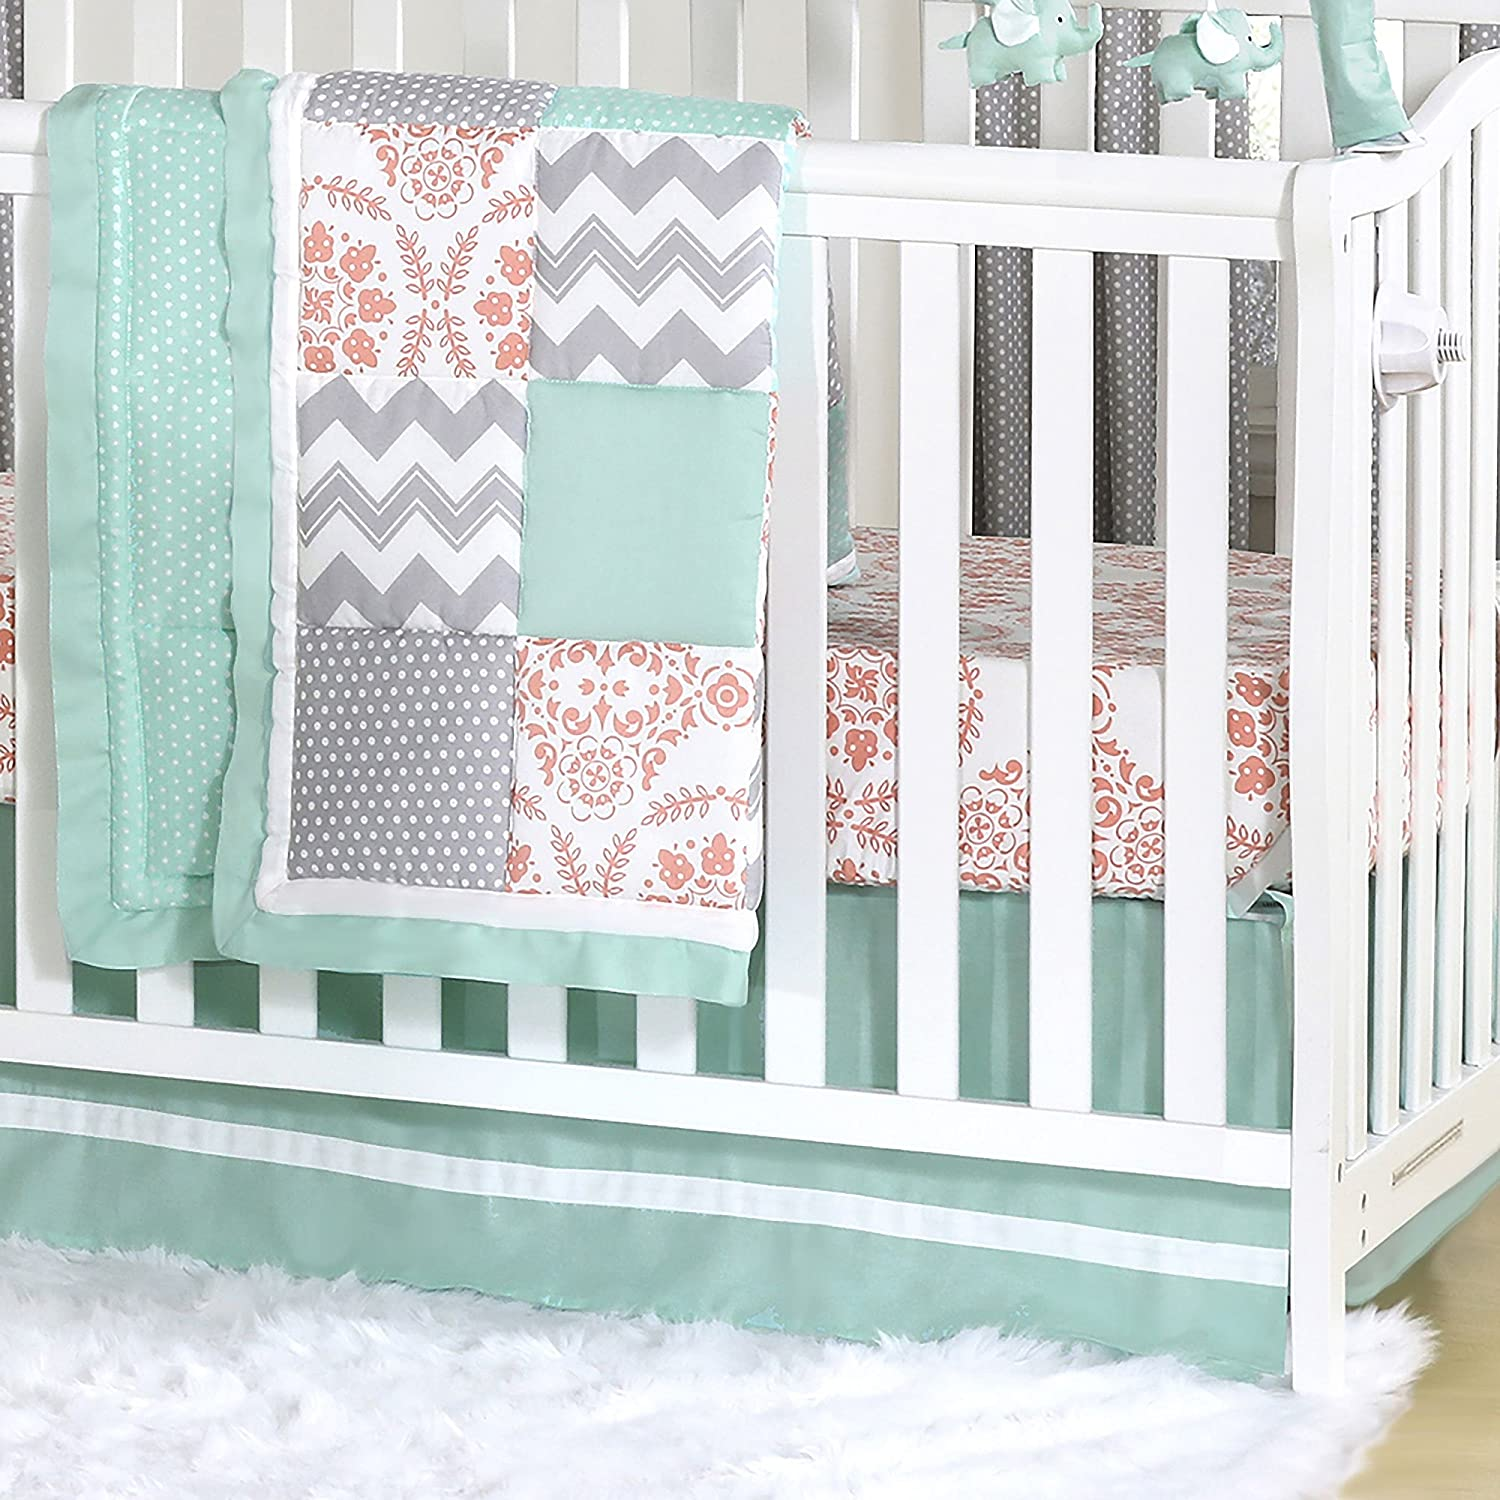 Mint, Coral and Grey Patchwork 3 Piece Baby Crib Bedding Set by The Peanut Shell by The Peanut Shell   B01KOO9RMI